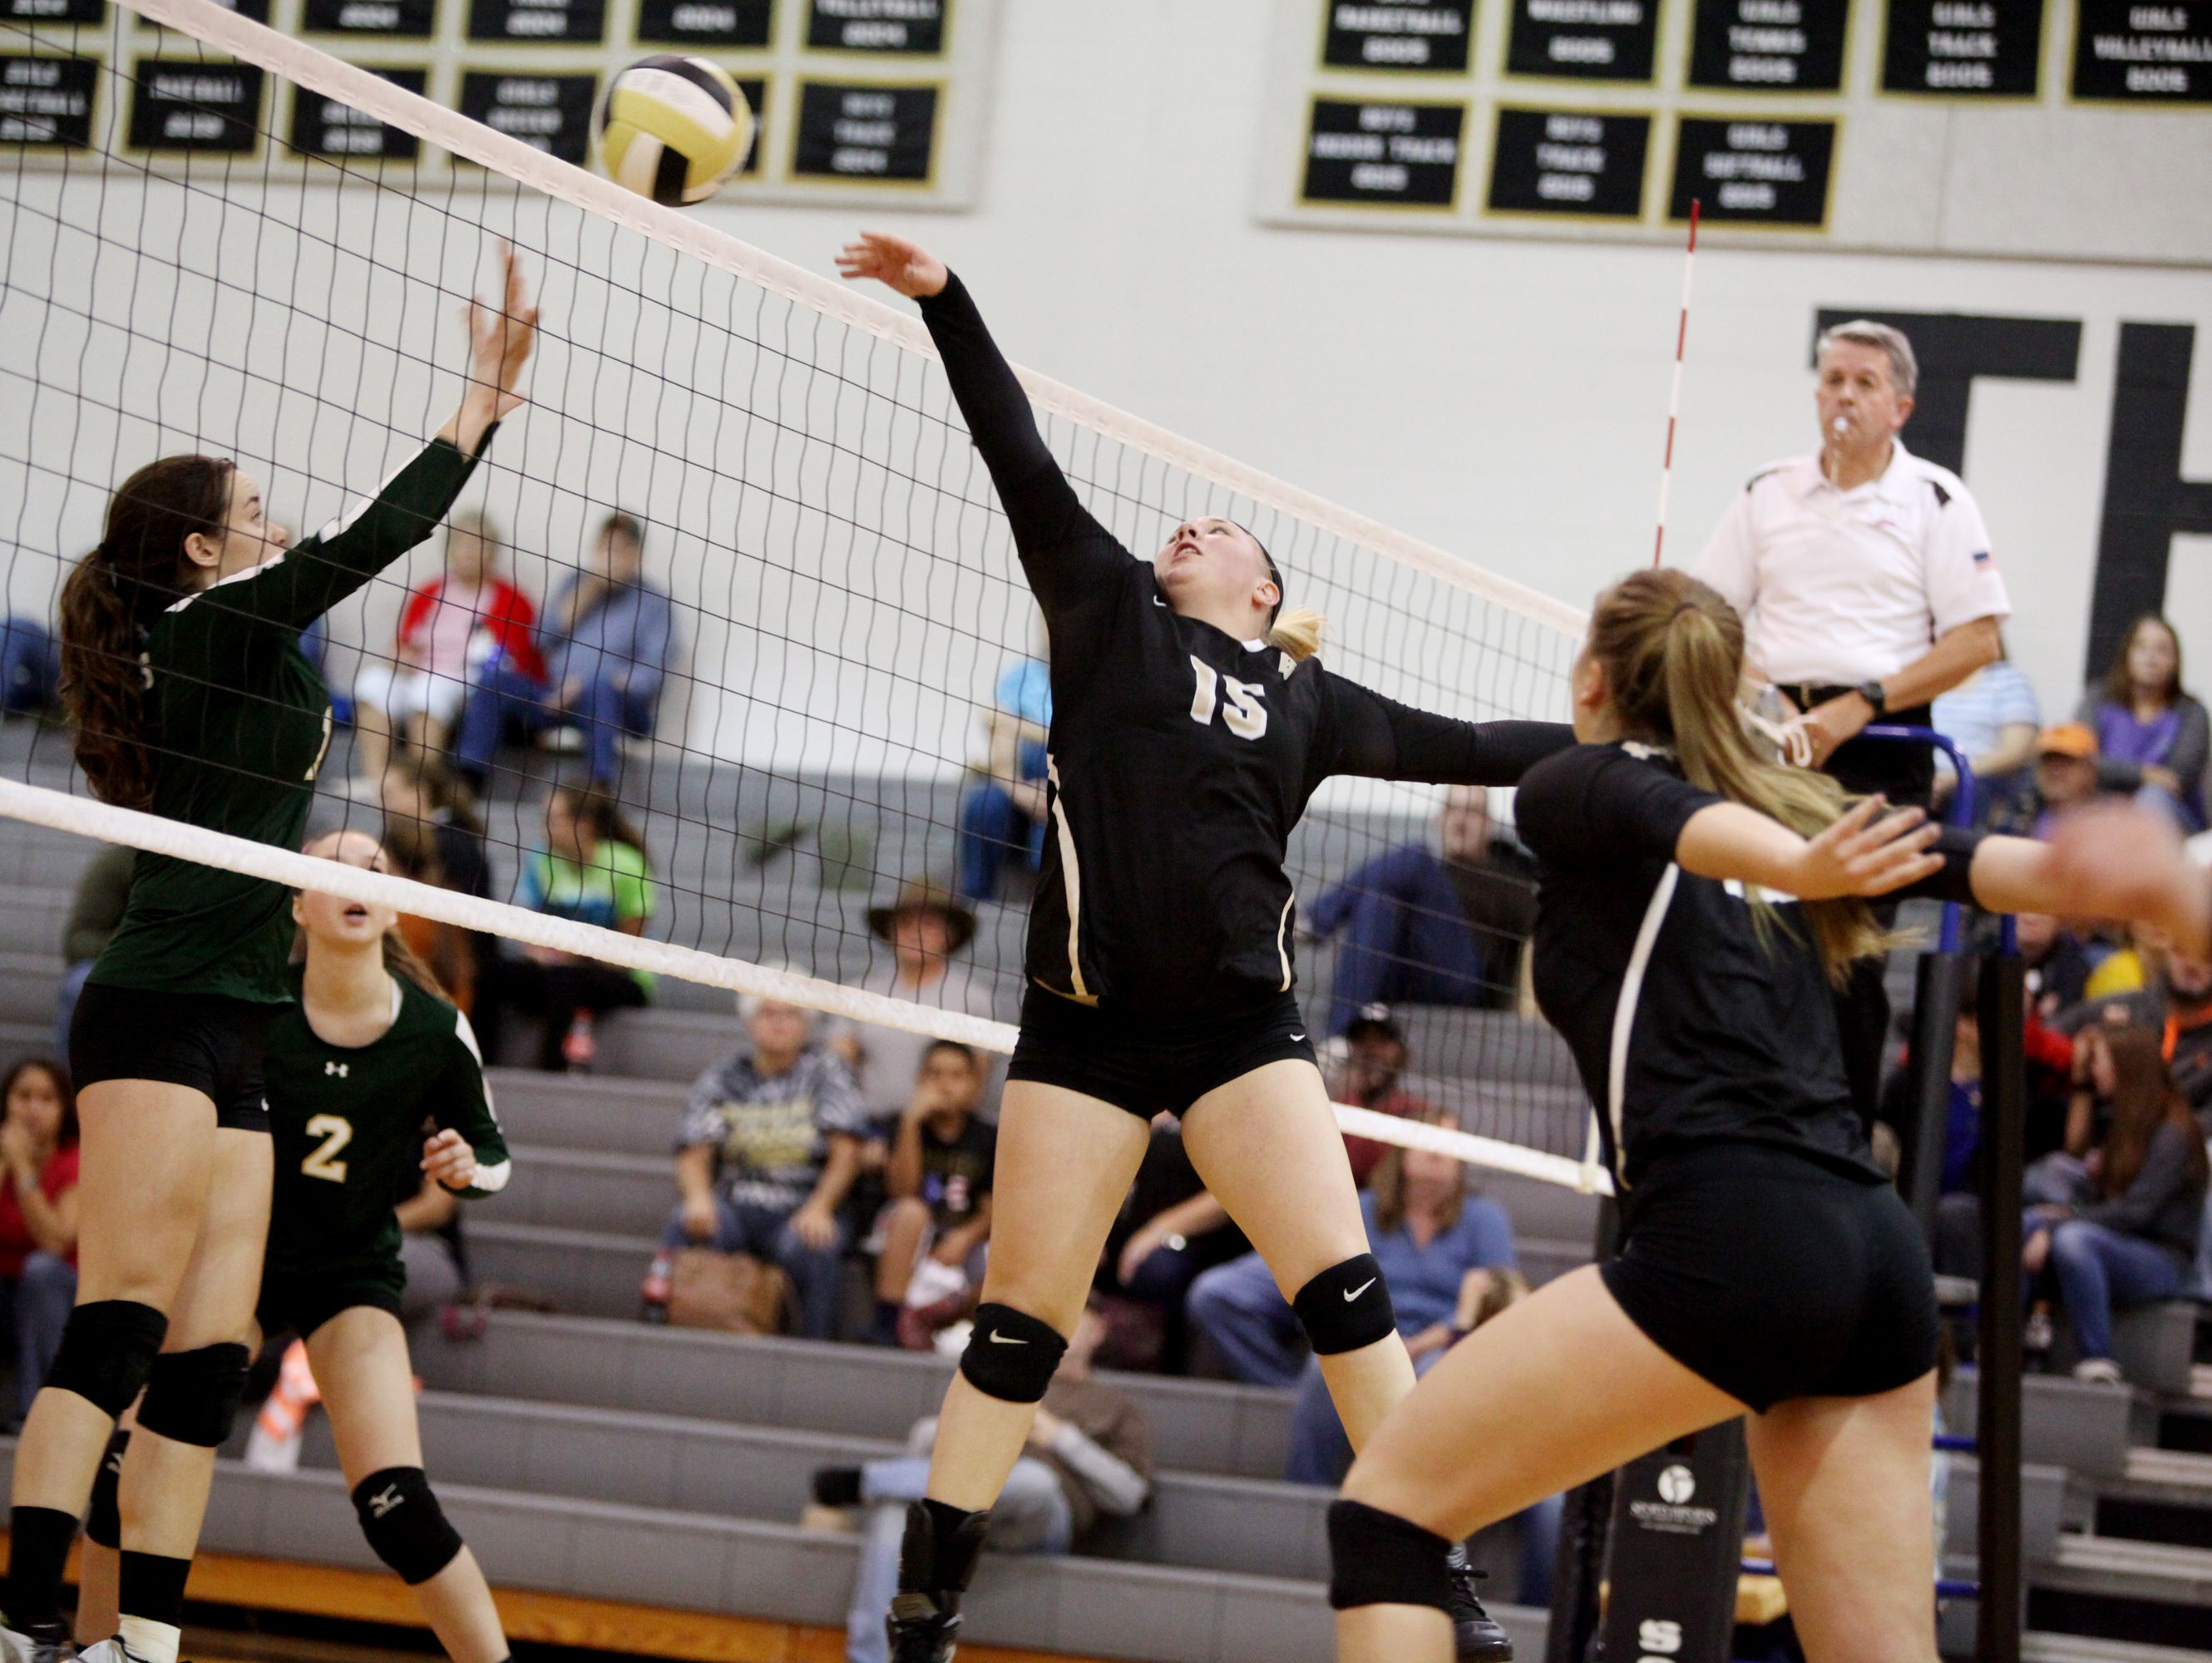 Buffalo Gap's Camille Ashby (15) will be a key part of her team's attack as the Bison travel to Marion Senior Tuesday for the VHSL 2A state semifinals.